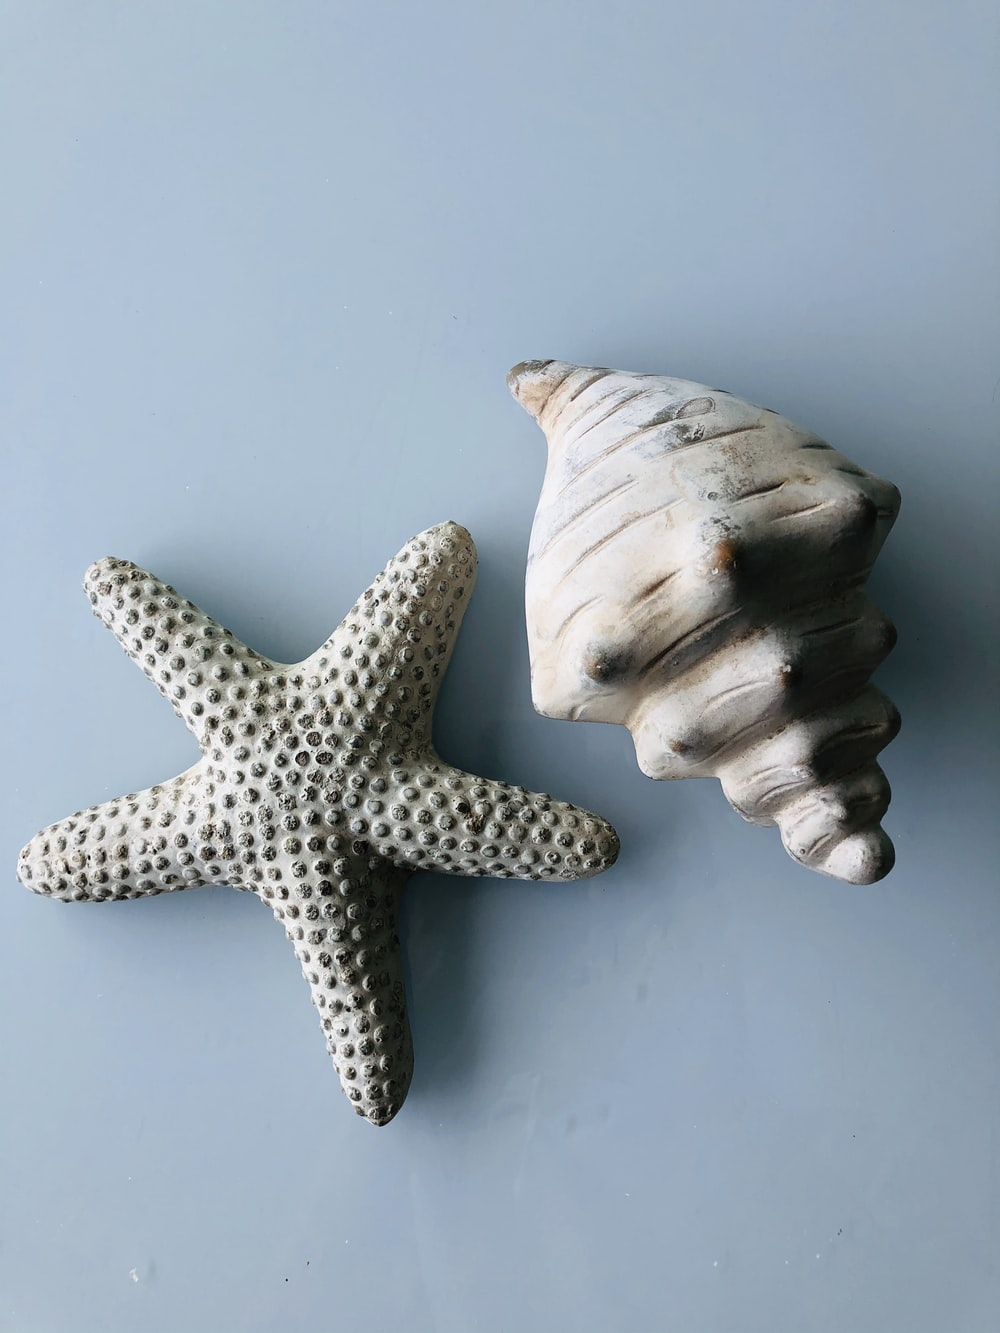 white and brown starfish on white surface